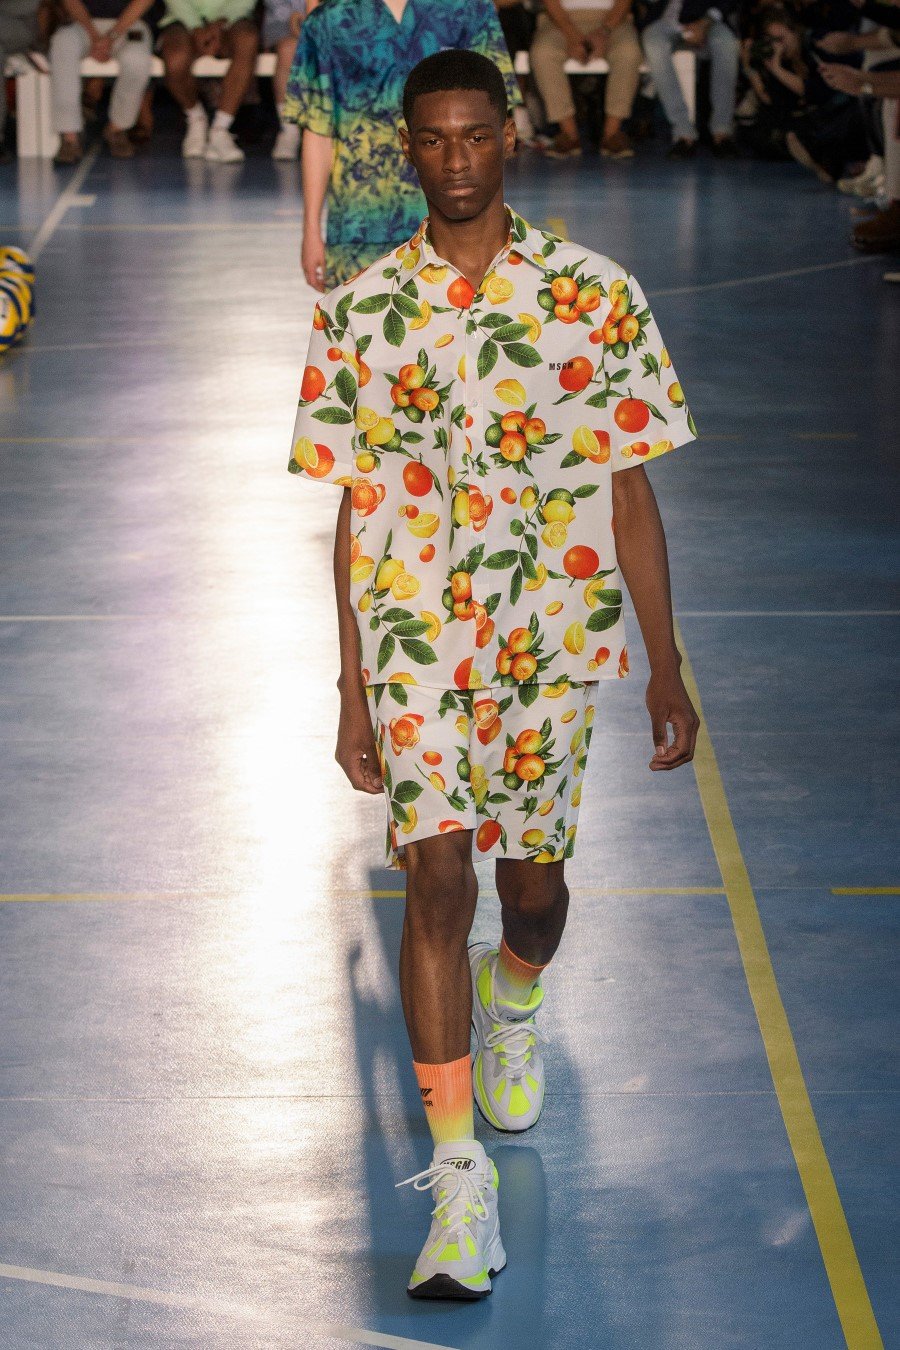 MSGM Printemps/Été 2019 - Milan Fashion Week